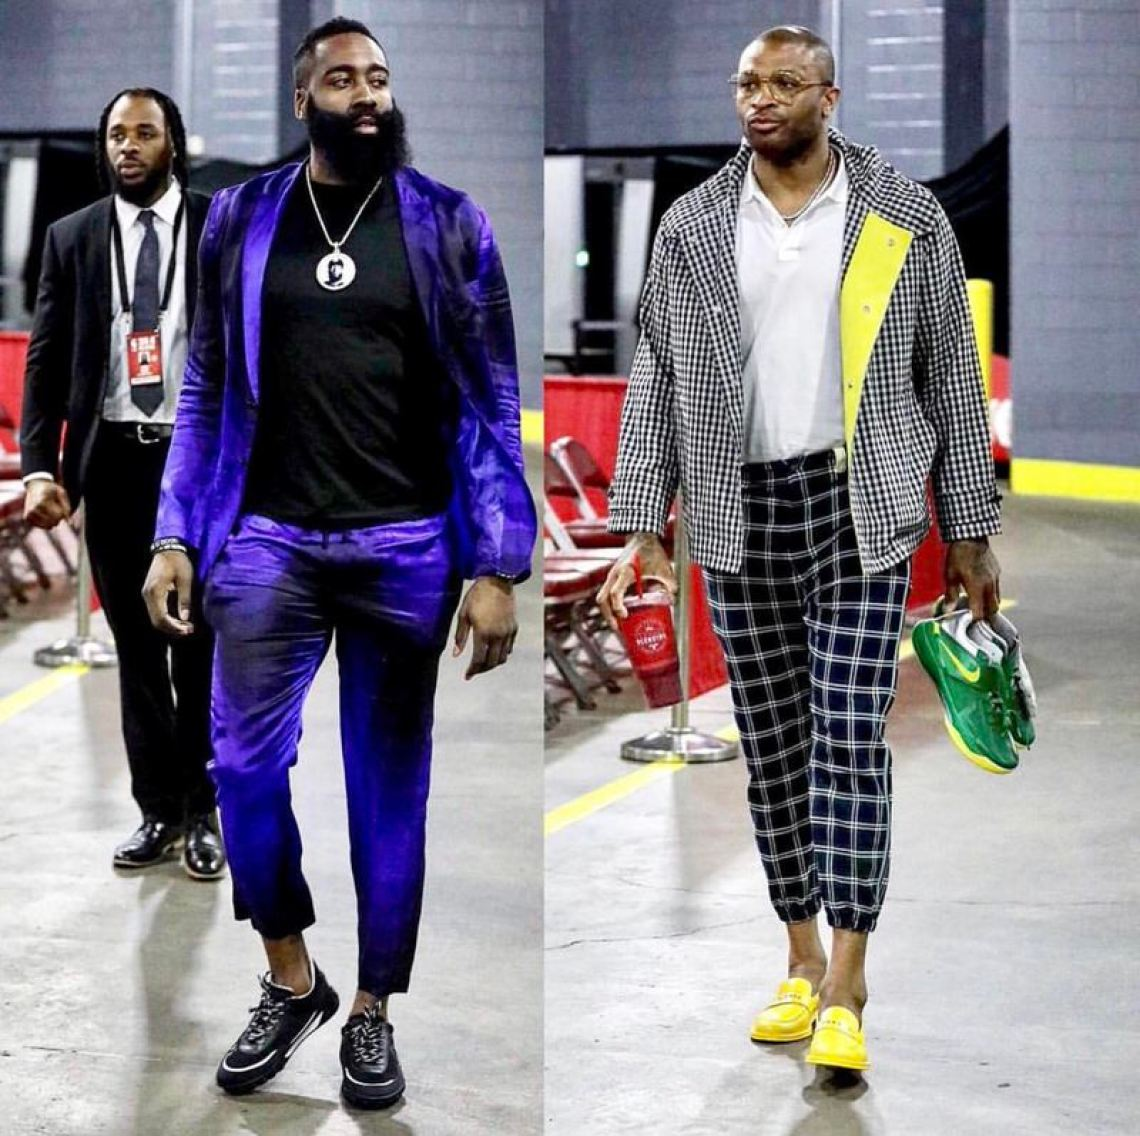 Vibrant colors and a loose cropped fit are the keys to winning pre-game style in the NBA Playoffs this year.